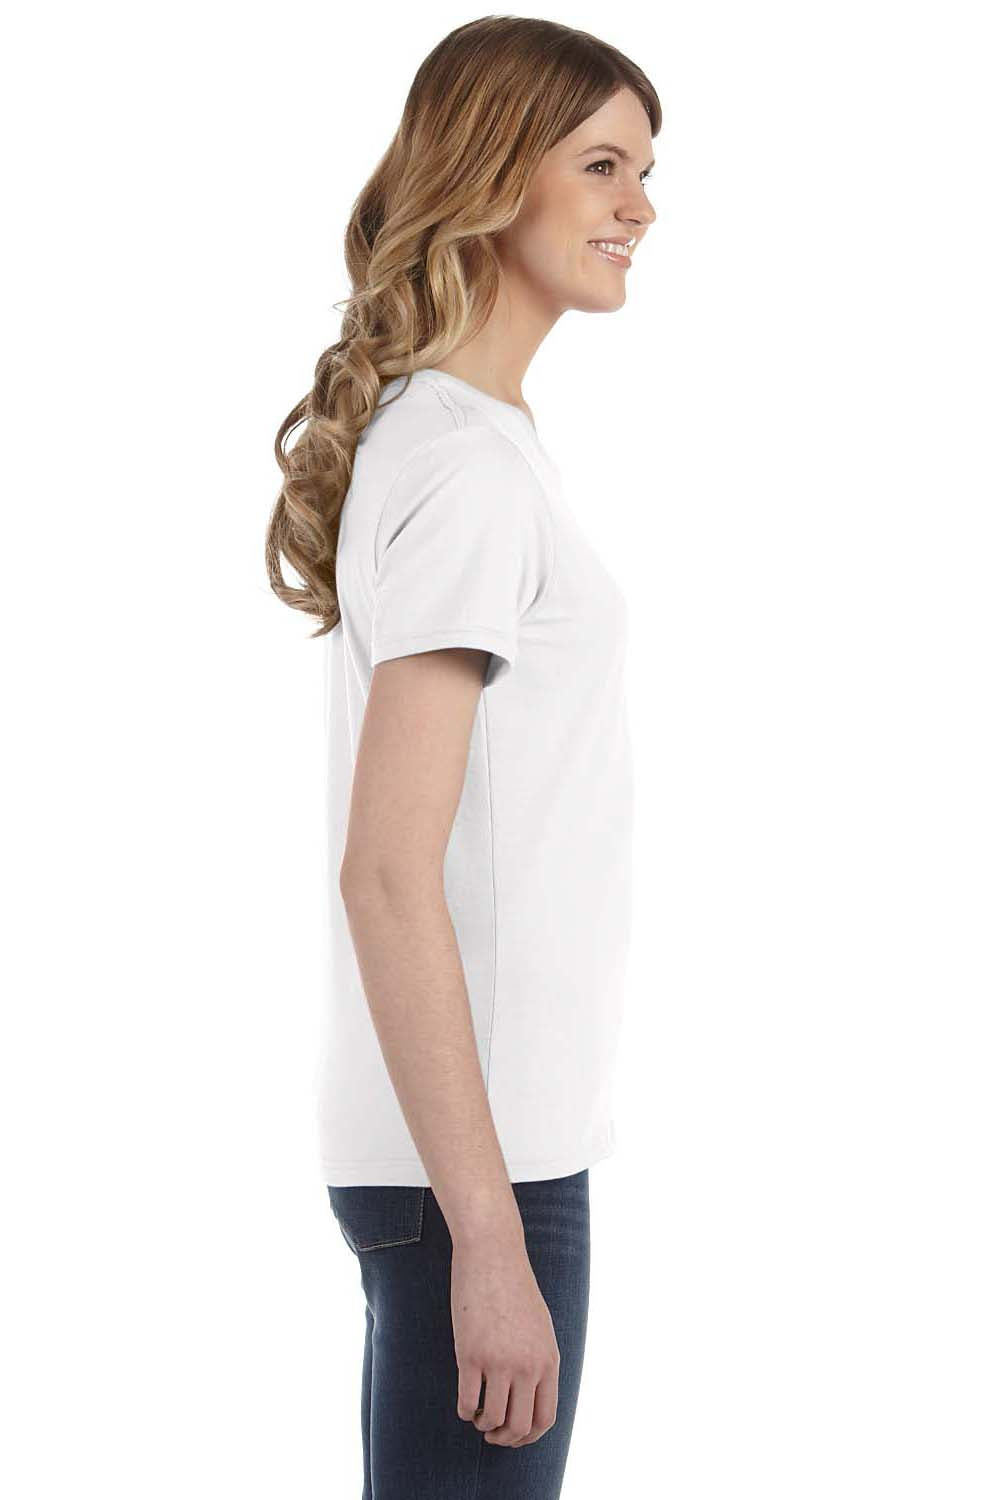 Anvil 880 Womens Short Sleeve Crewneck T-Shirt White Side